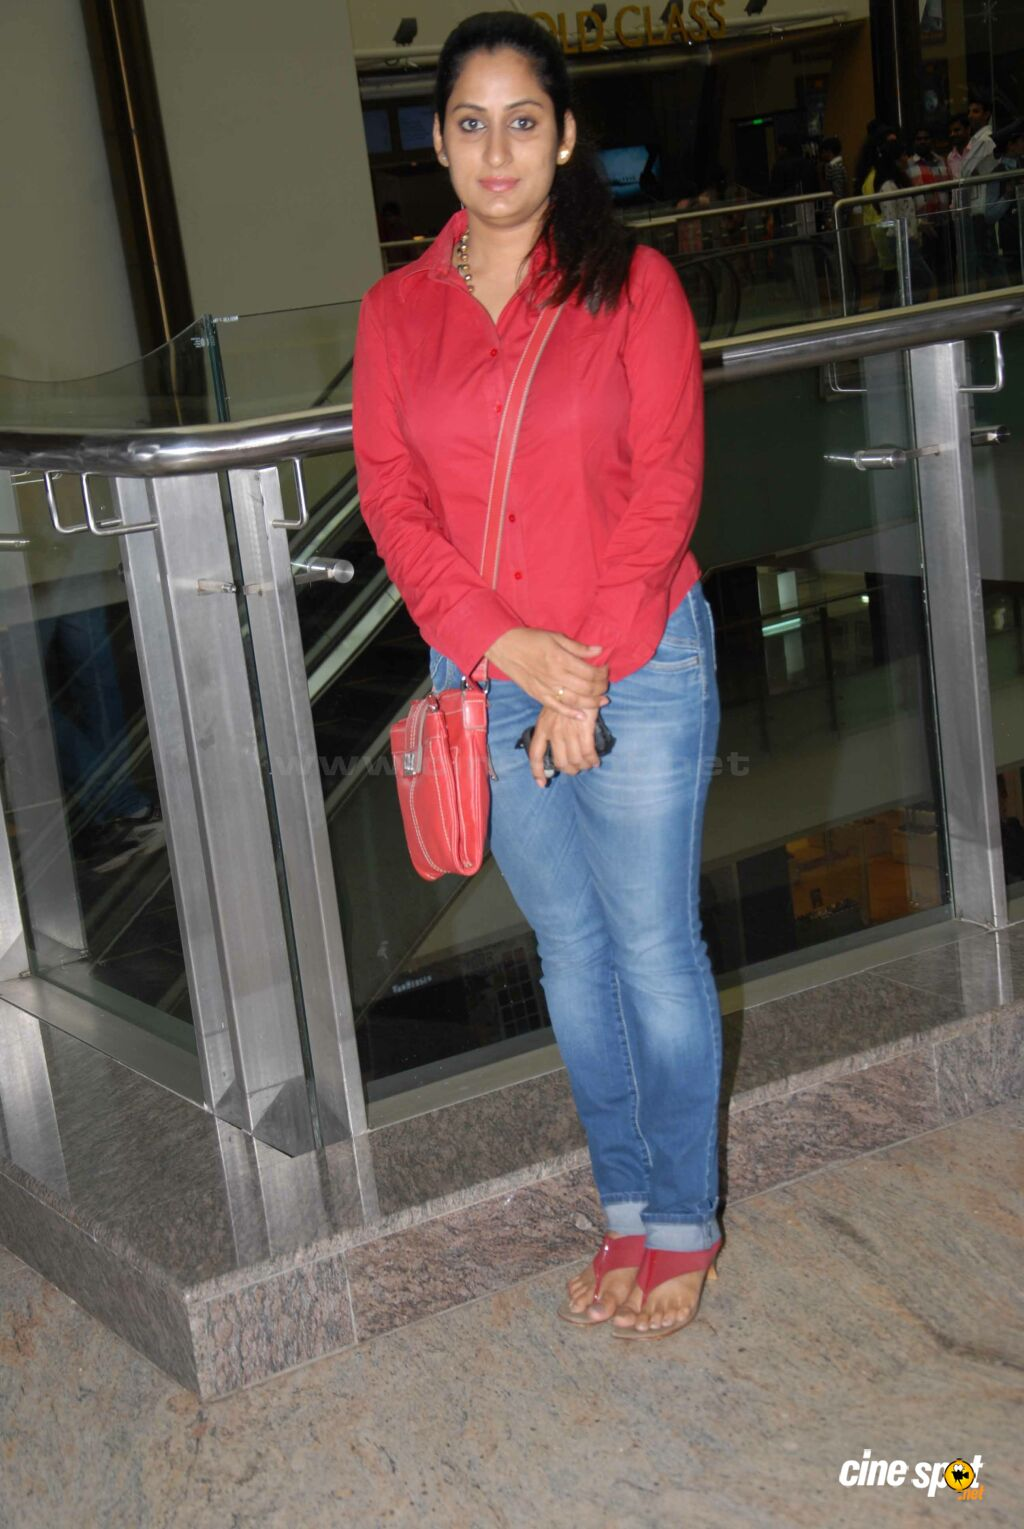 roopa iyer first things firstroopa iyer first things first, roopa iyer movies, roopa iyer age, roopa iyer family, roopa iyer sisters, roopa iyer family photos, roopa iyer colors, roopa iyer marriage, roopa iyer marriage photos, roopa iyer husband, roopa iyer udayavani, roopa iyer facebook, roopa iyer instagram, roopa iyer hot, roopa iyer images, roopa iyer marriage video, roopa iyer wedding, roopa iyer wedding photos, roopa iyer wedding pics, roopa iyer reception photos